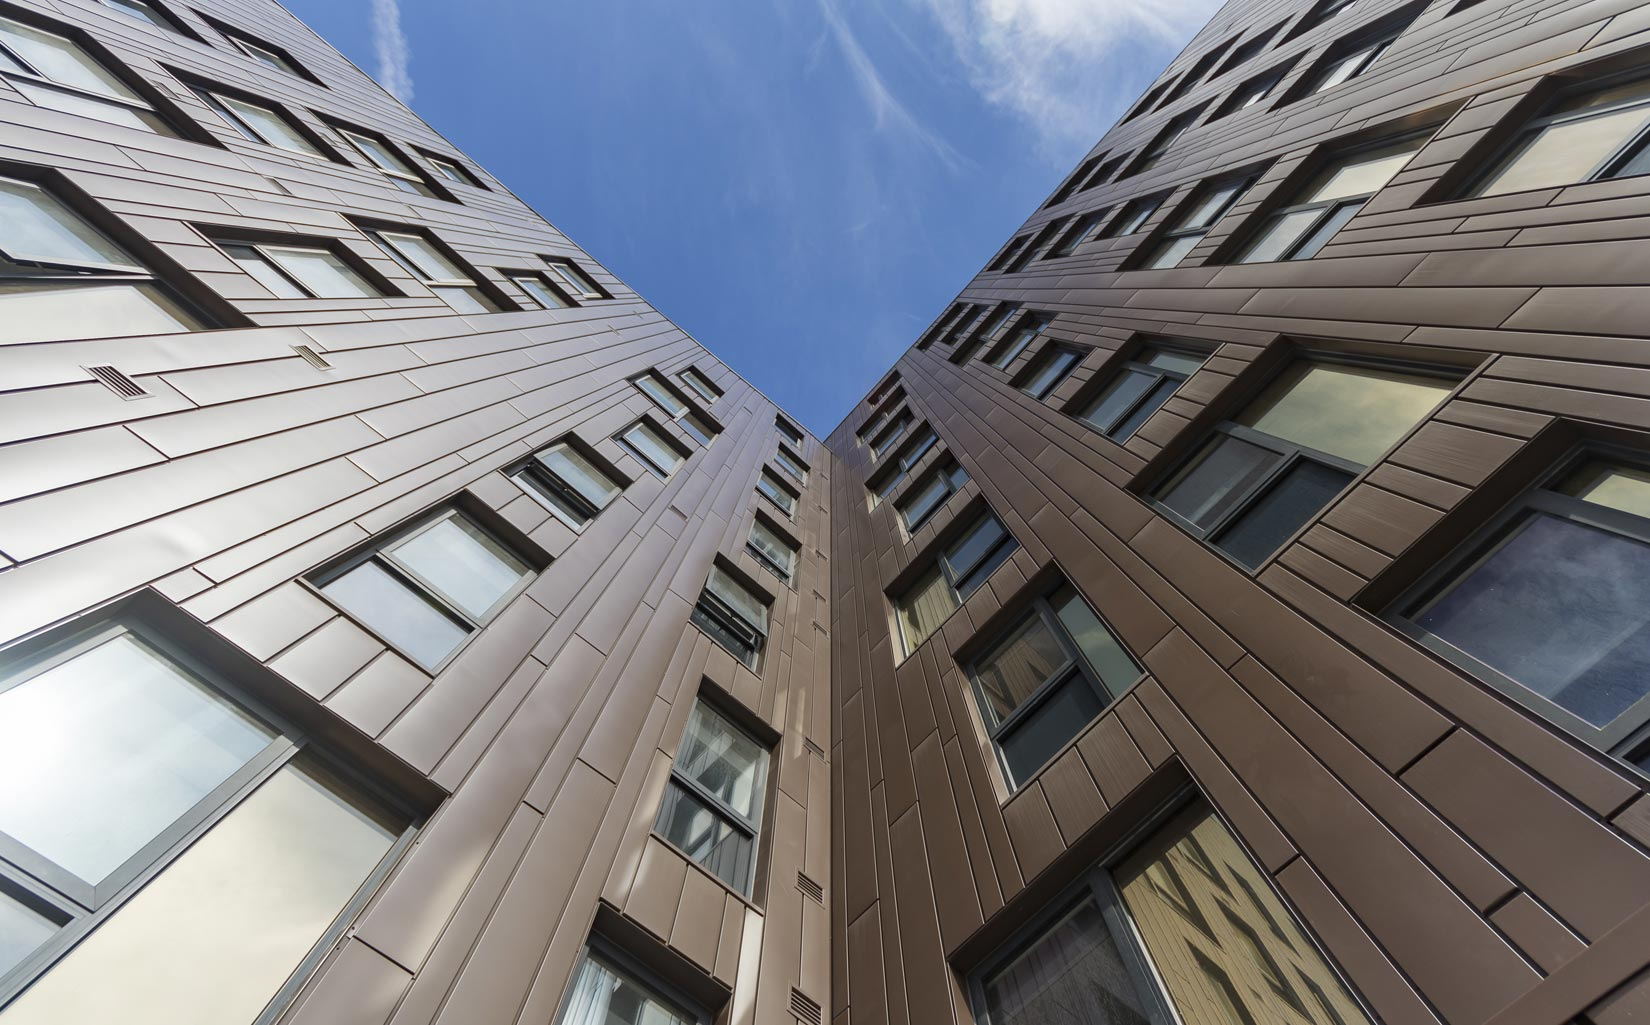 The Foundry , Cavendish Street, Leeds, Cladding Detail